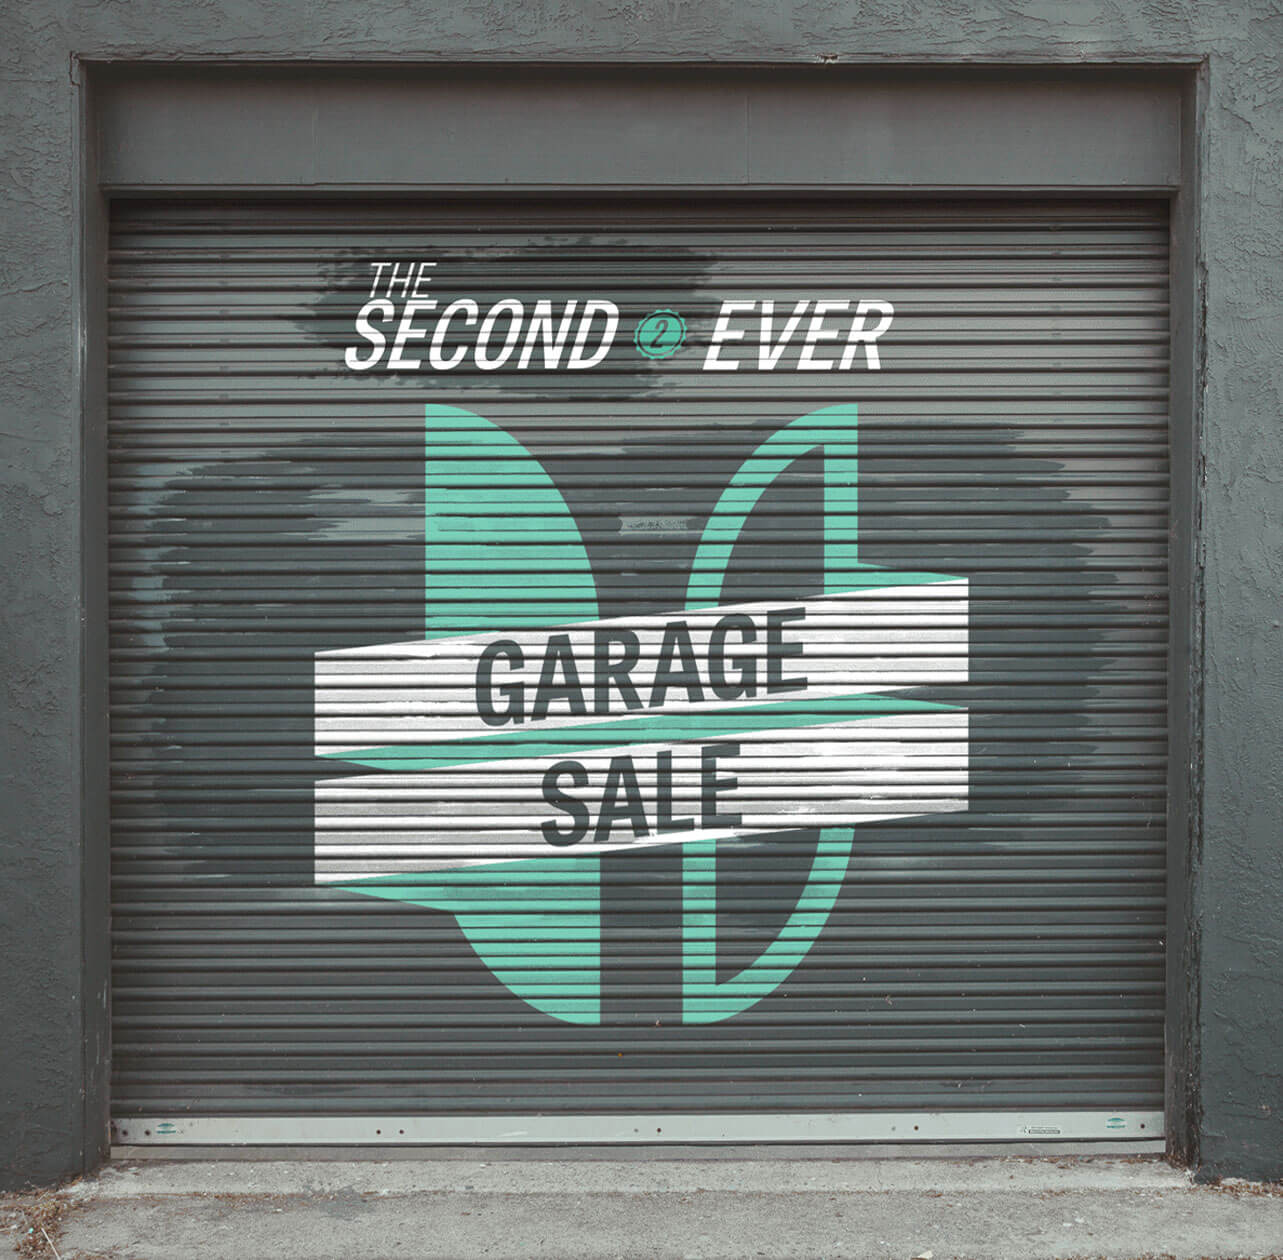 OUR 2ND EVER GARAGE SALE